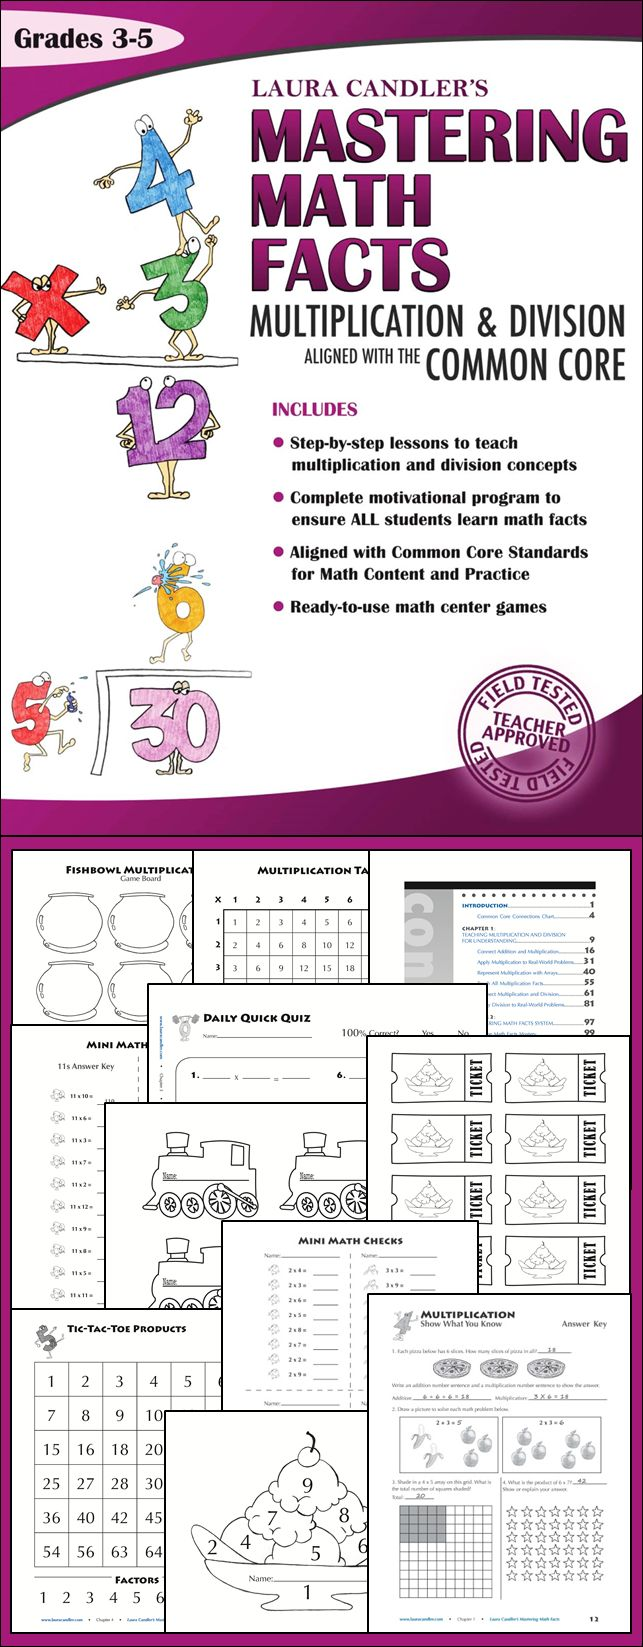 Mastering Math Facts Multiplication and Division: Aligned with the Common  Core - Laura Candler's best